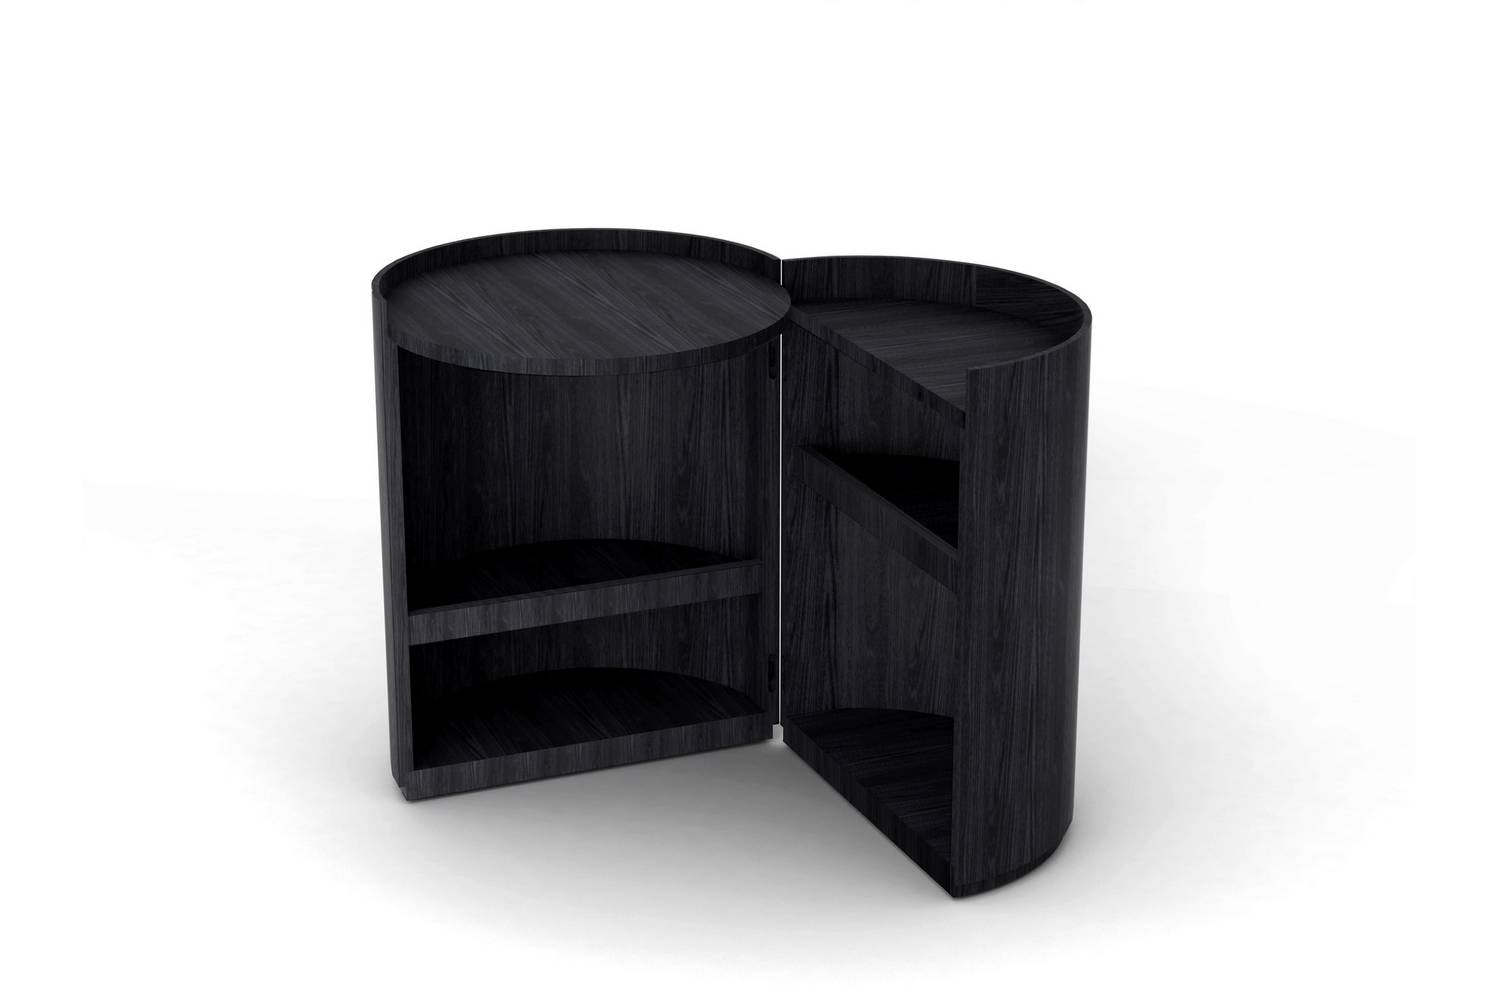 Moon Bedside Table by Mist-o for Living Divani